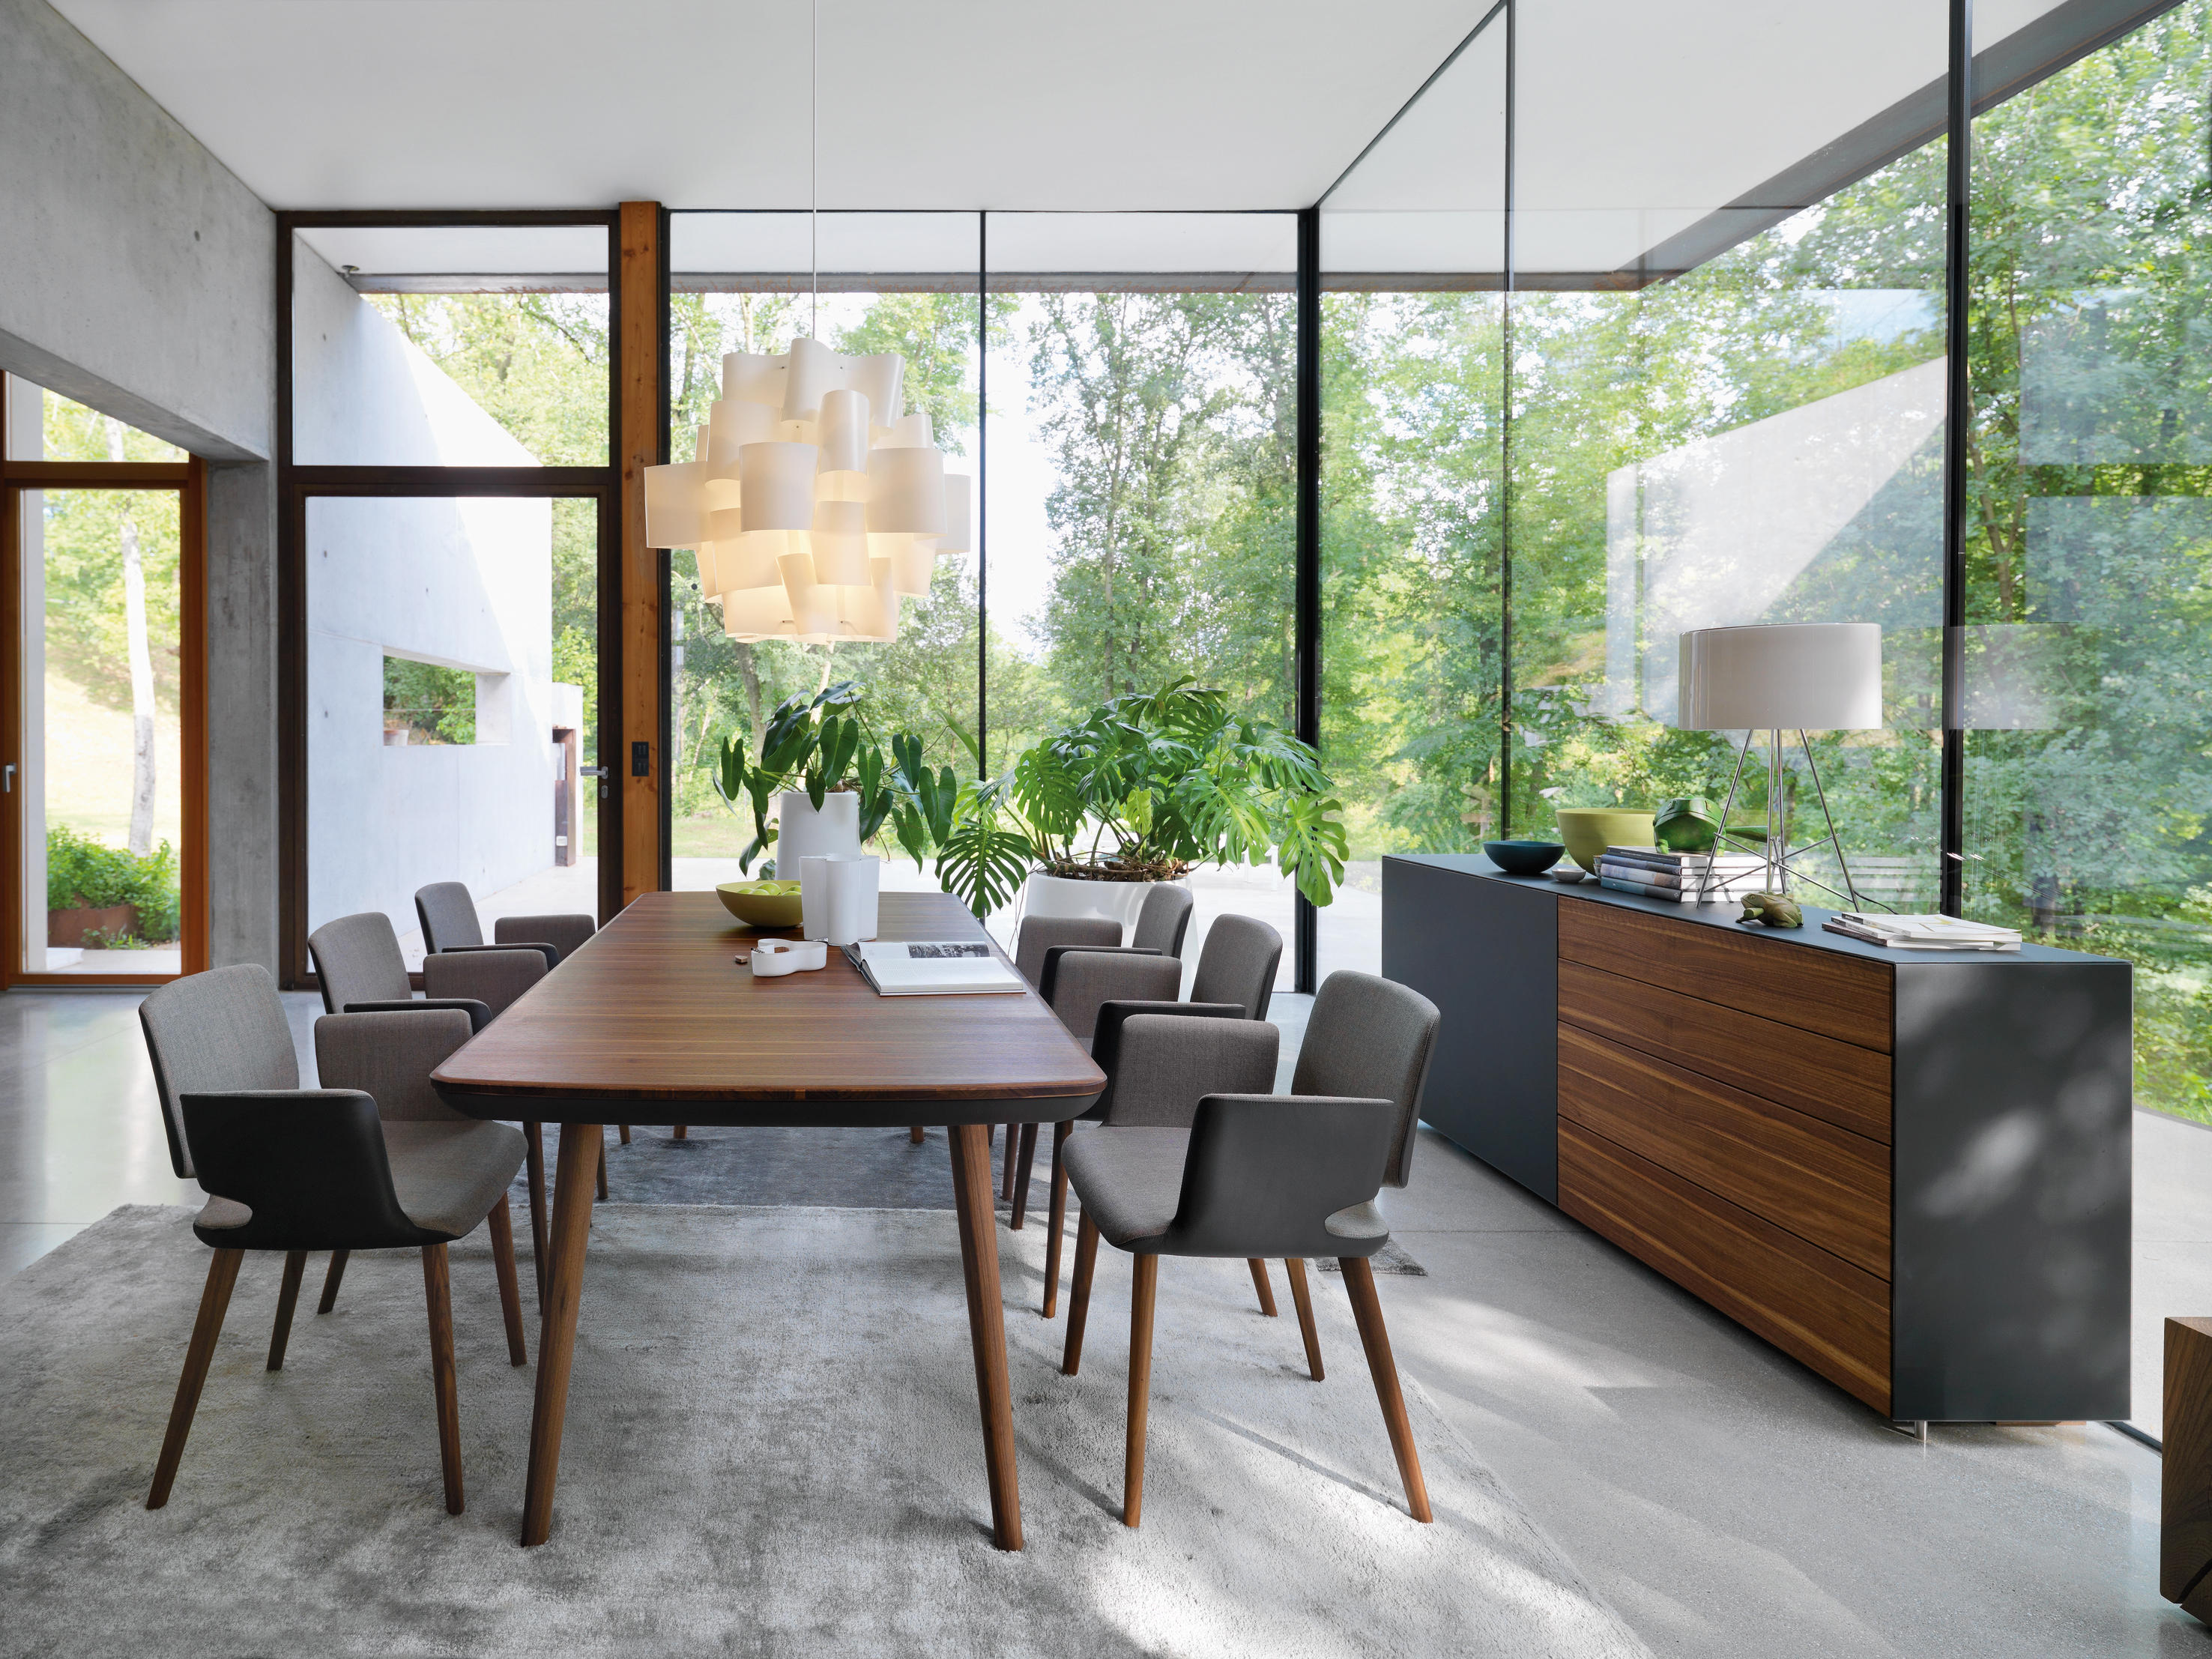 flaye extension table dining tables from team 7 architonic. Black Bedroom Furniture Sets. Home Design Ideas